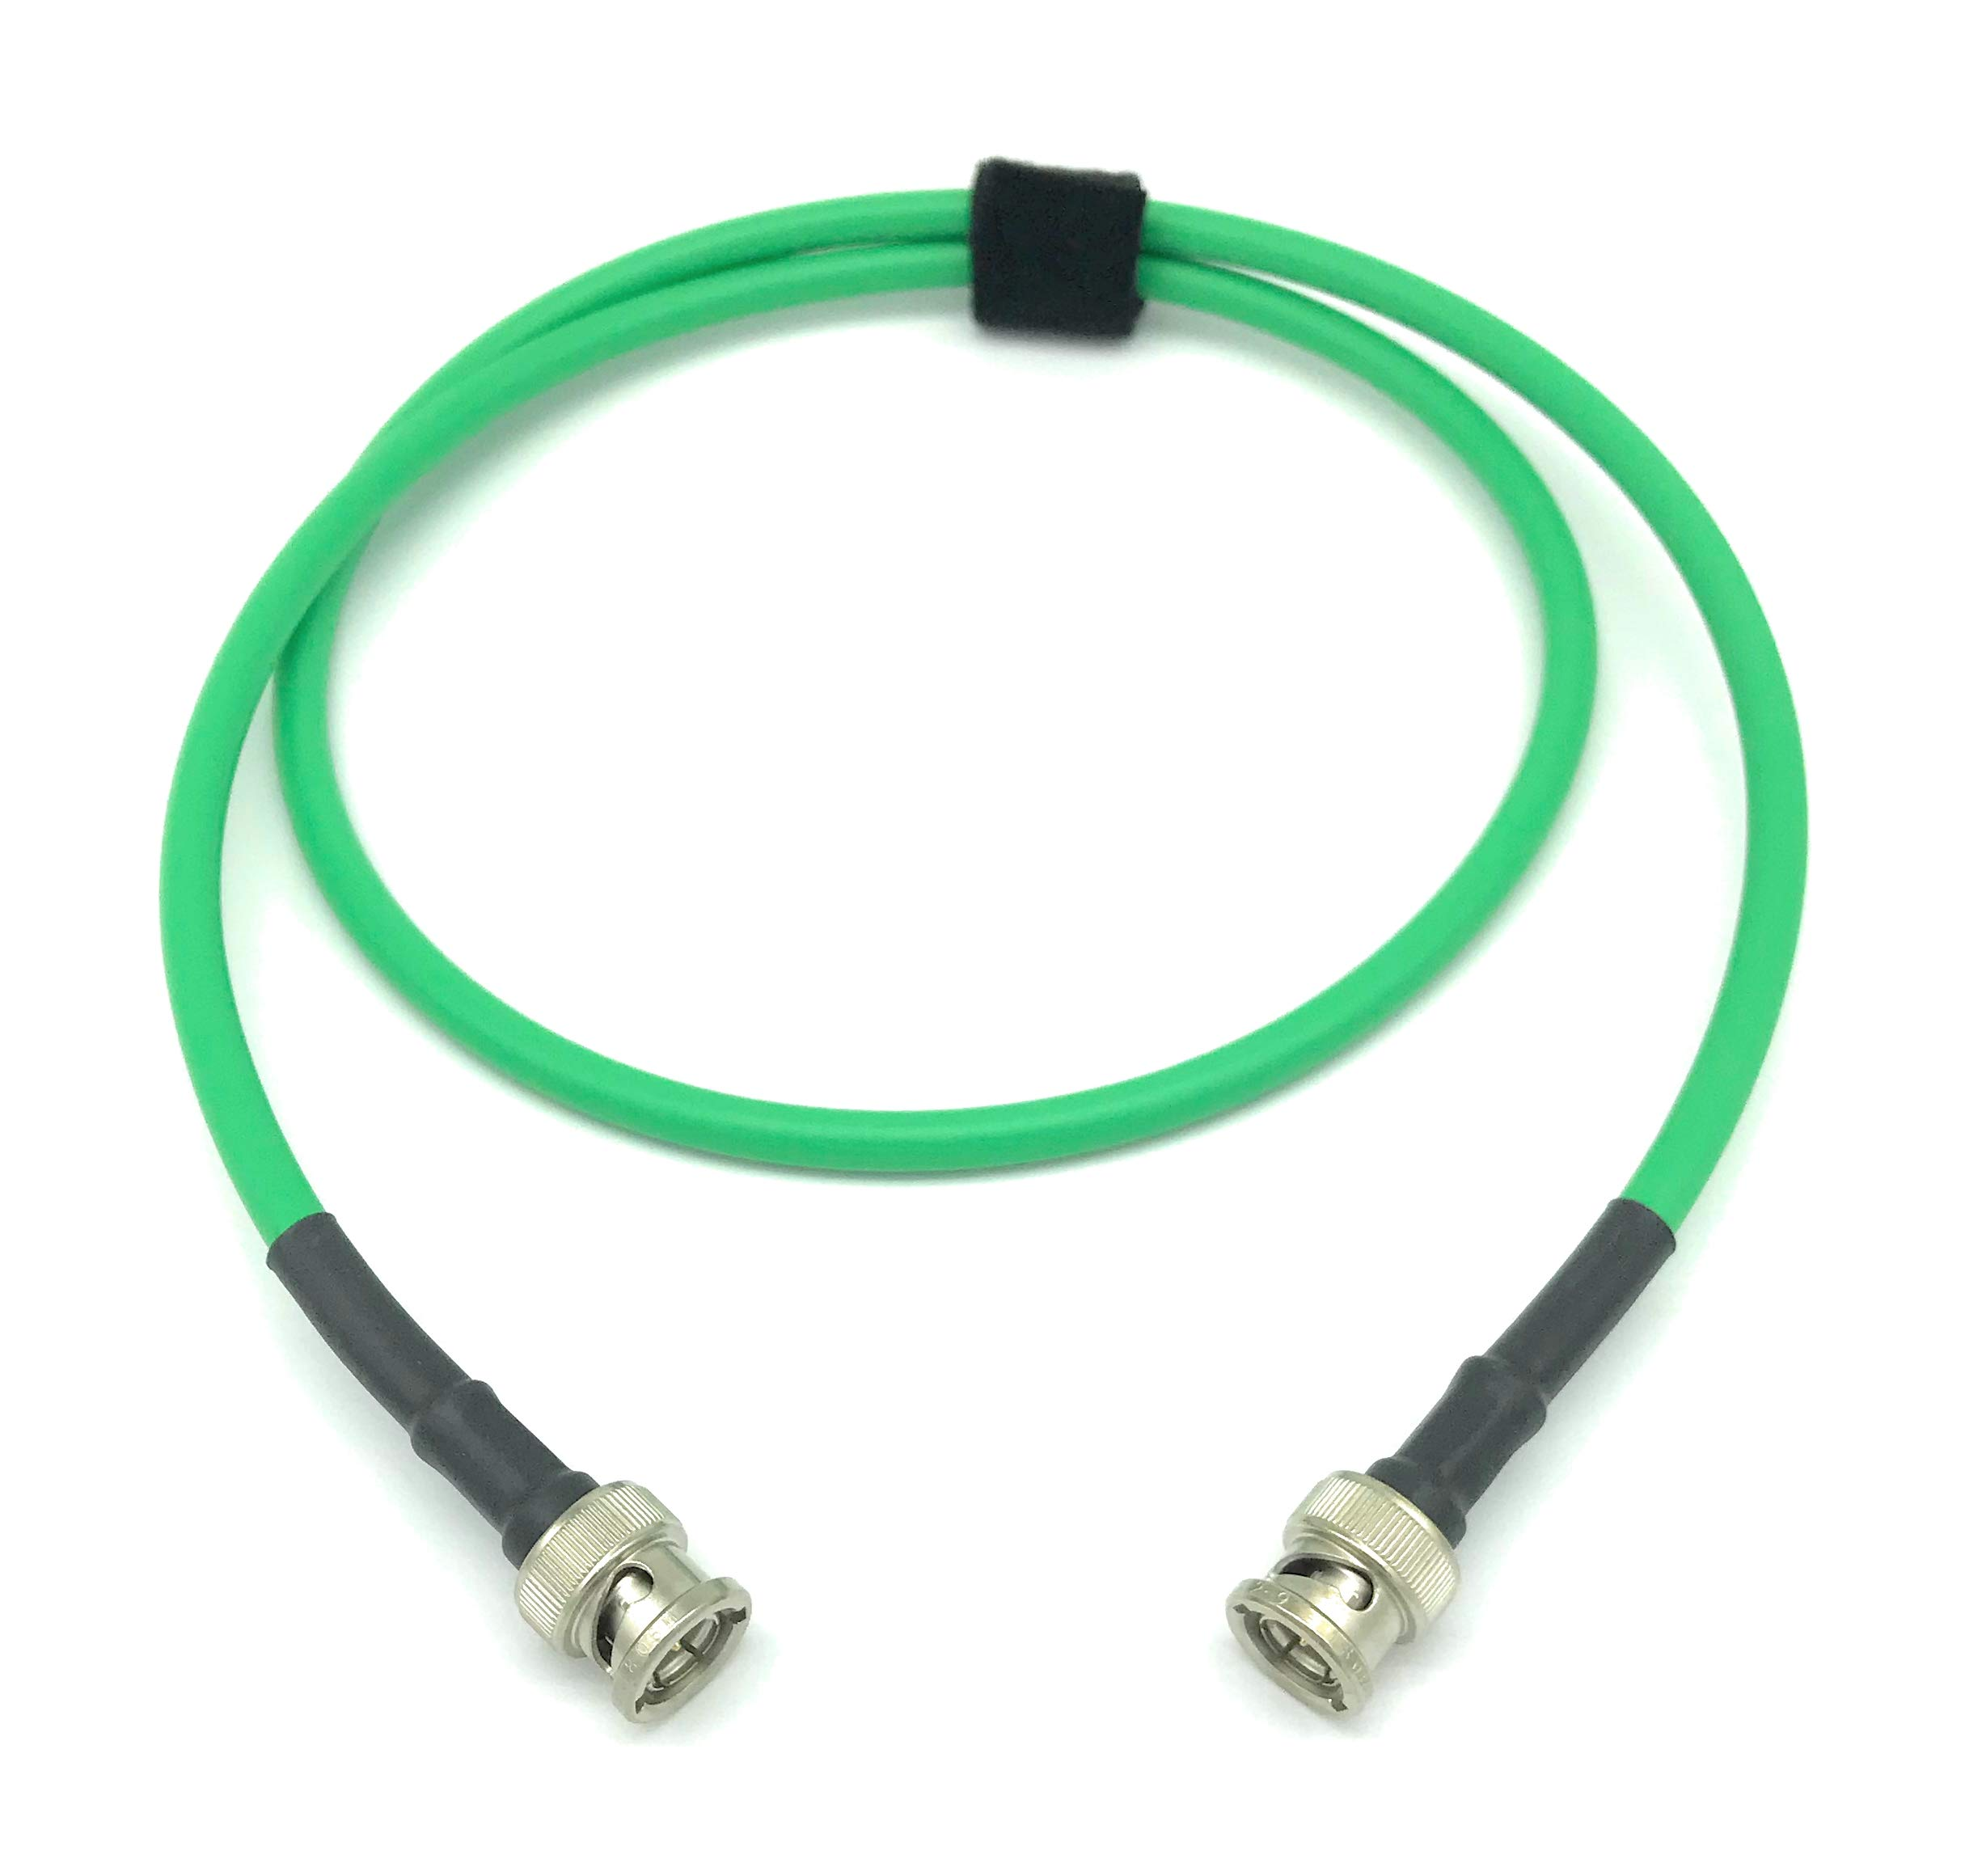 150ft RG59 HD SDI BNC Cable Gepco VPM2000 Cable - Green